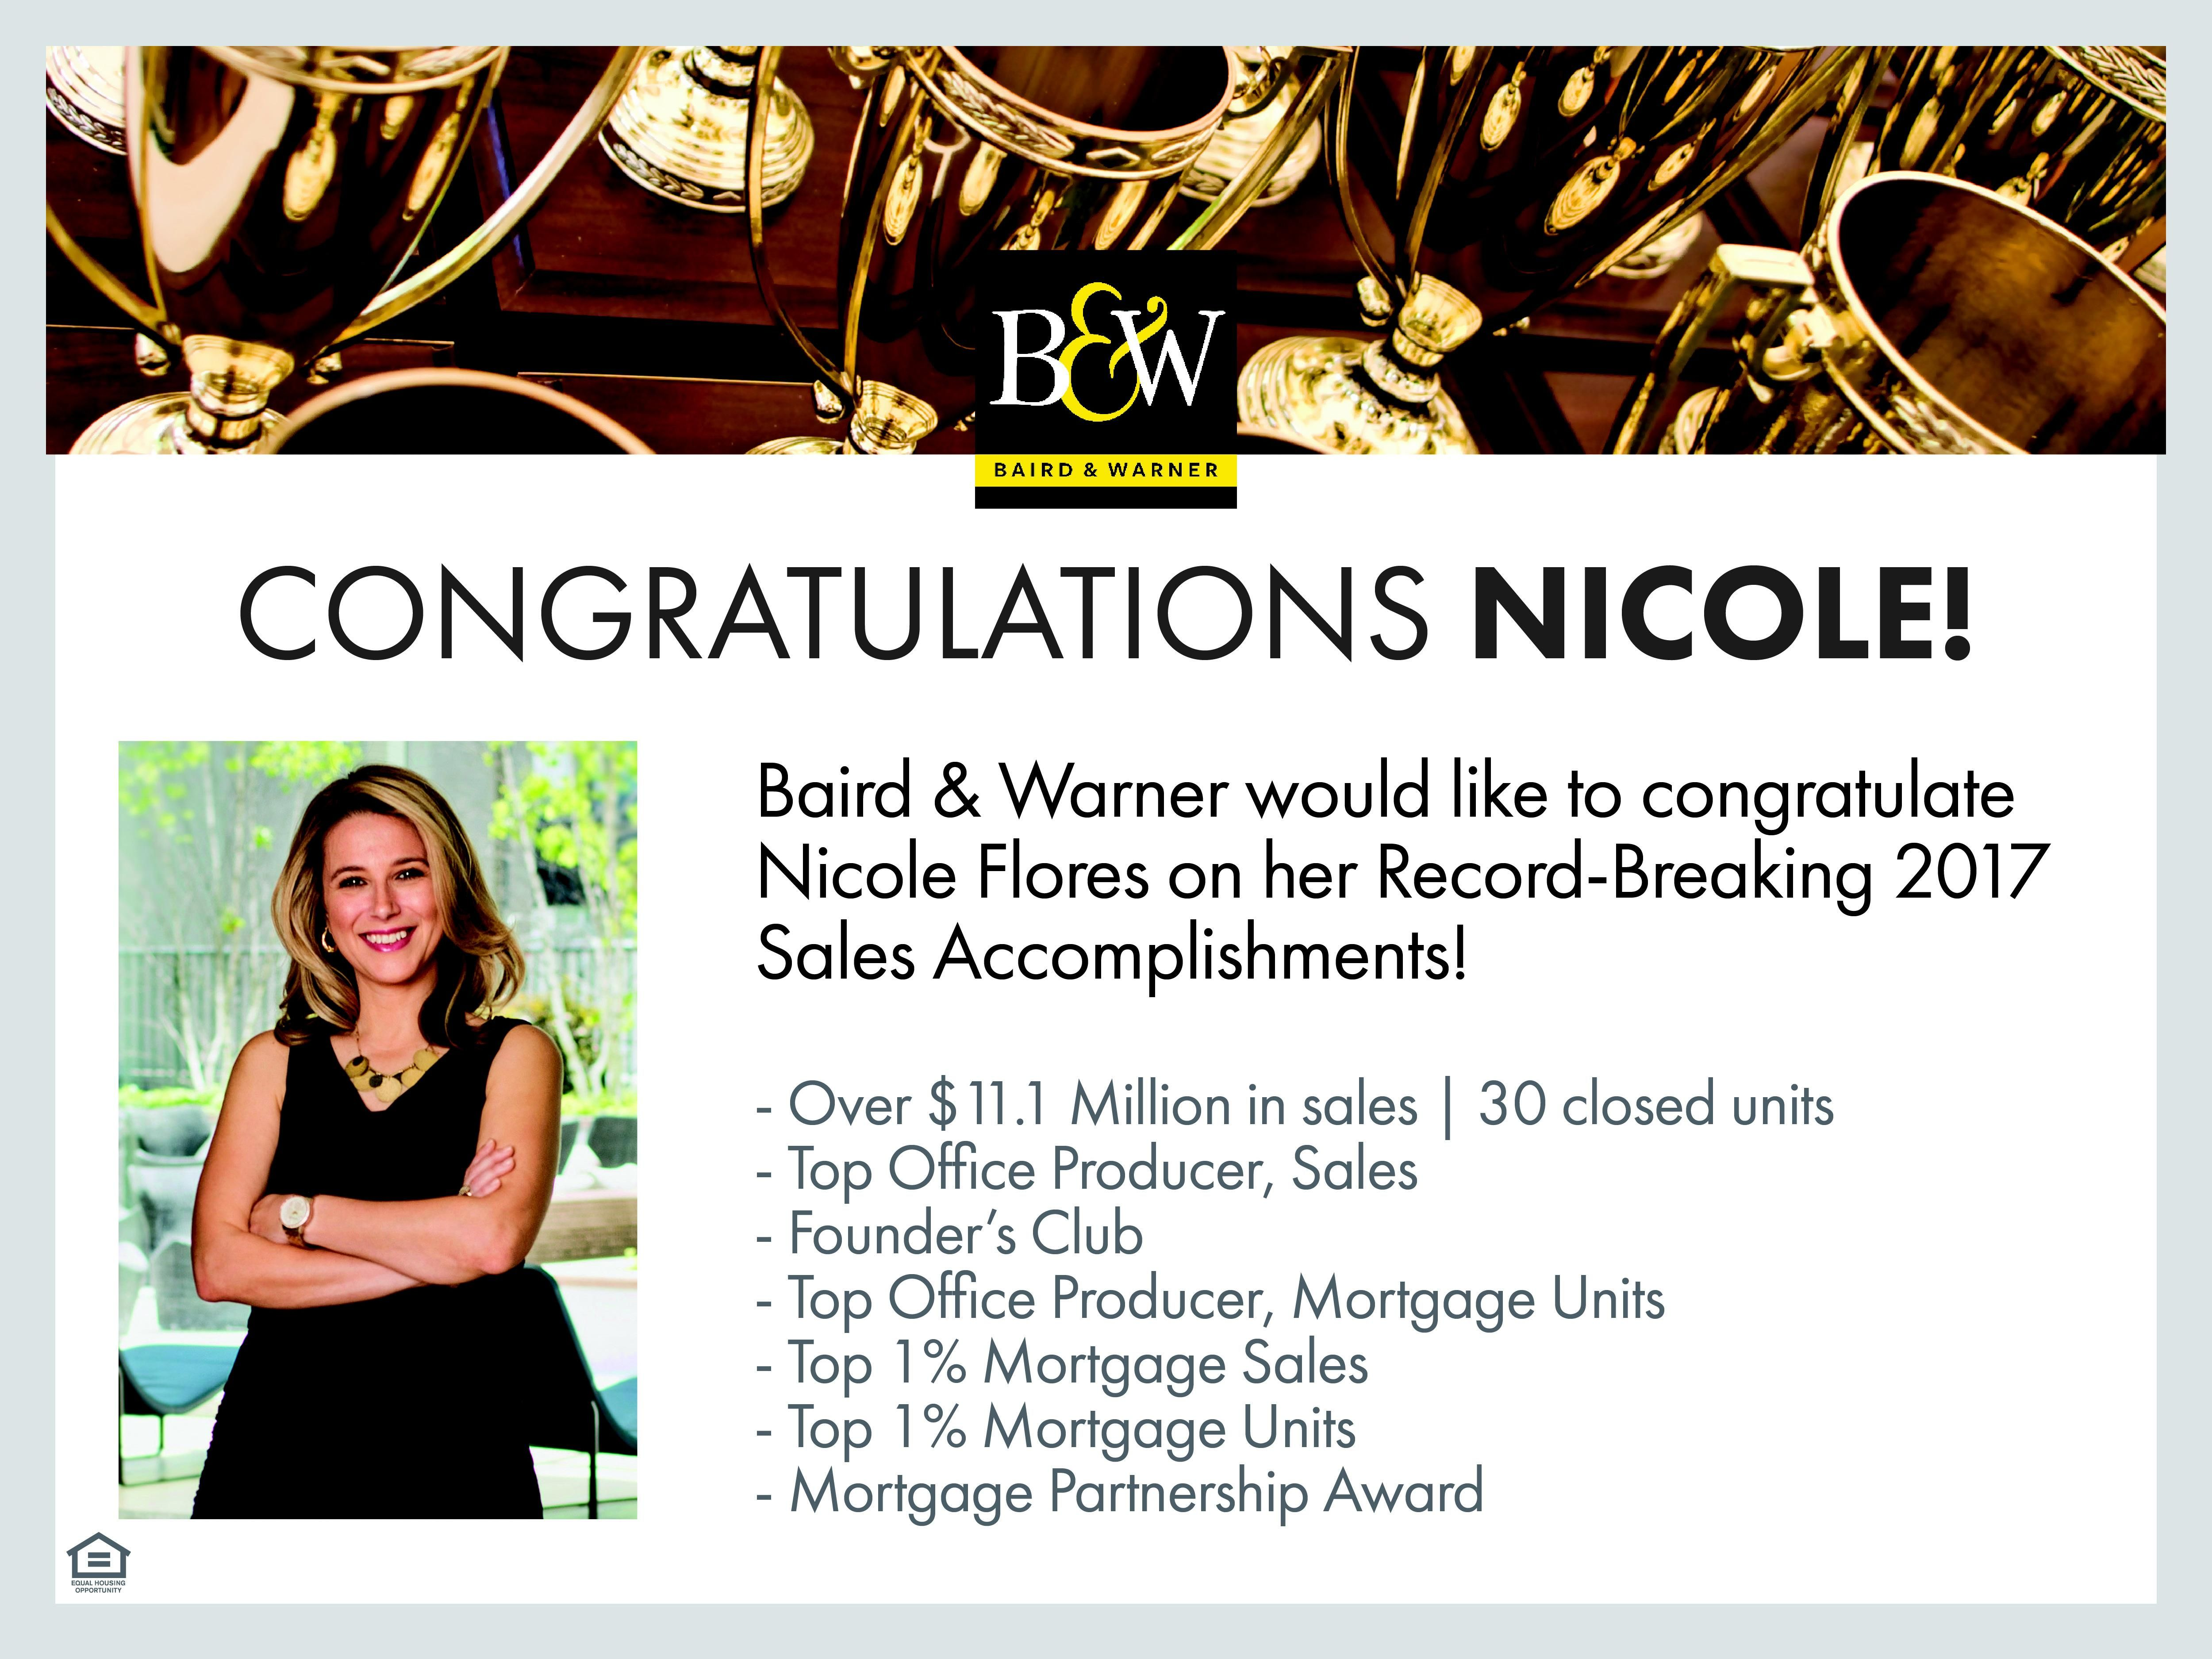 Nicole Flores named to Baird & Warner Founder's Club